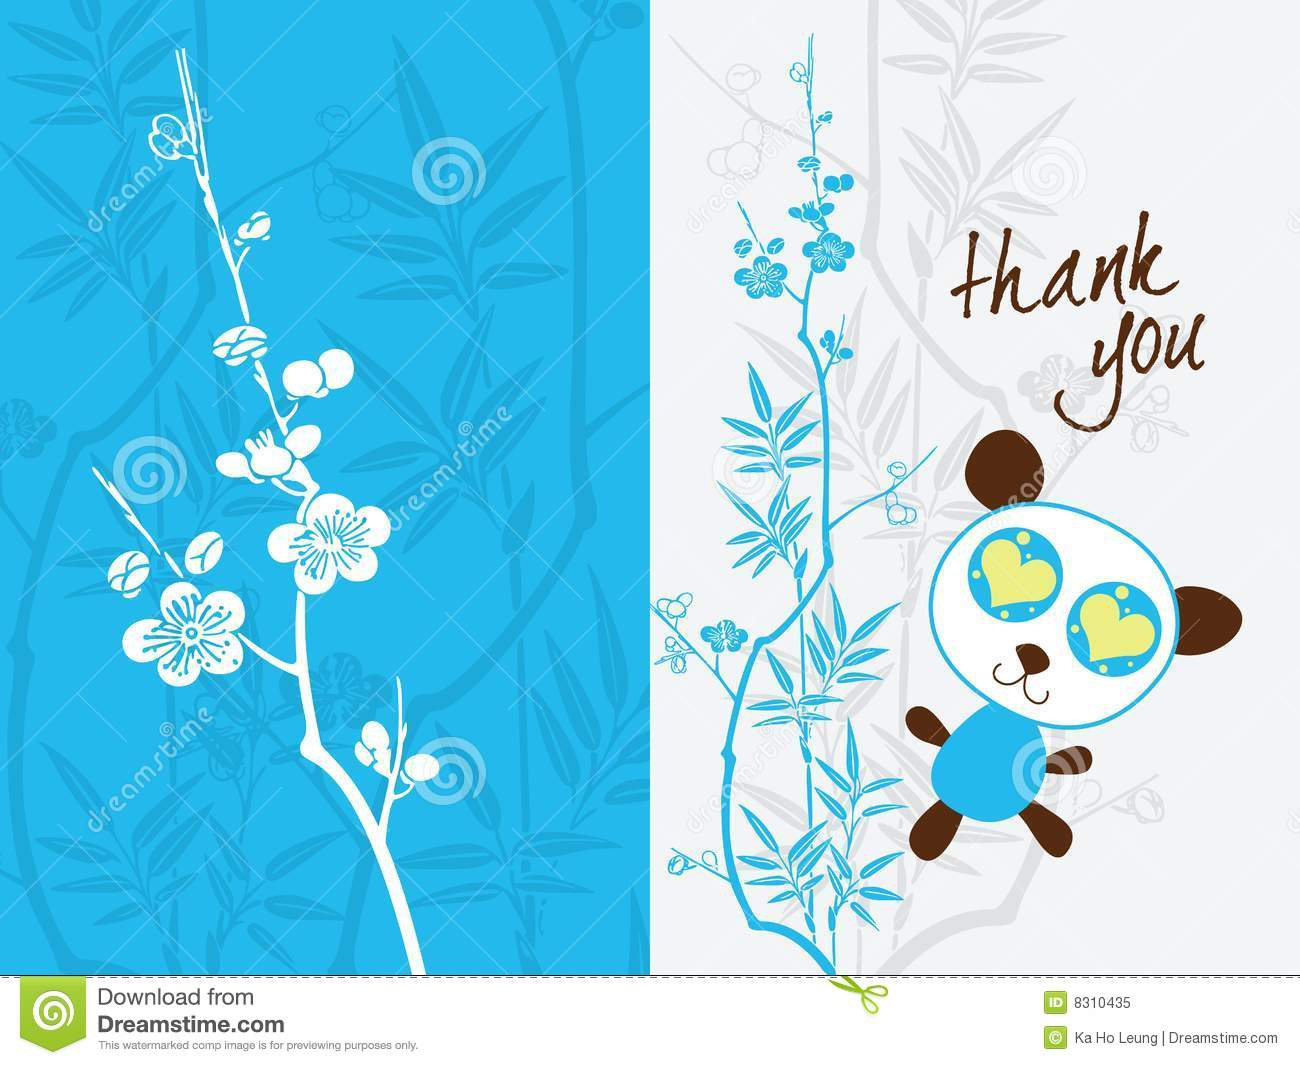 Thank You Card Template Royalty Free Photo Image 8310435 – Thank You Card Templates Free Download